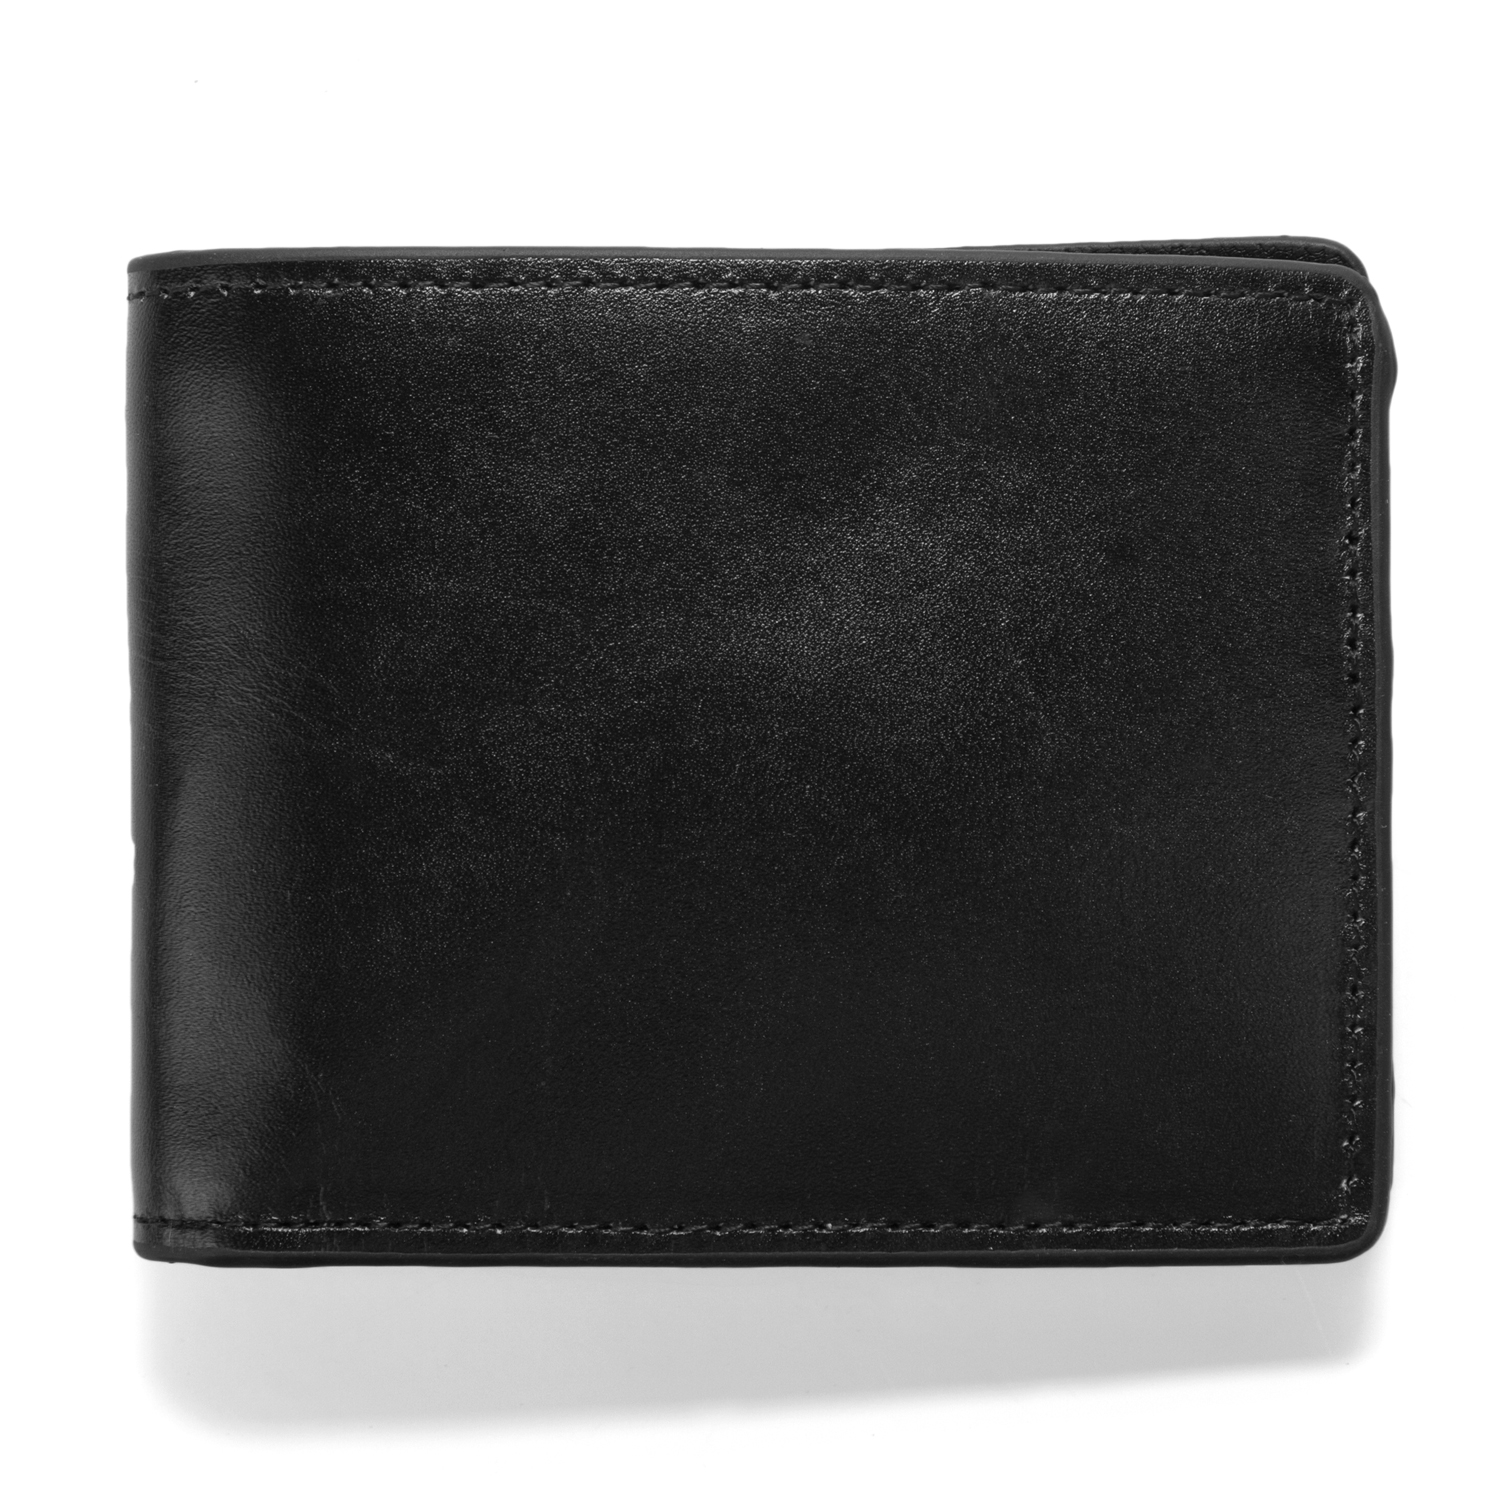 J.FOLD Leather Wallet Havana - Black